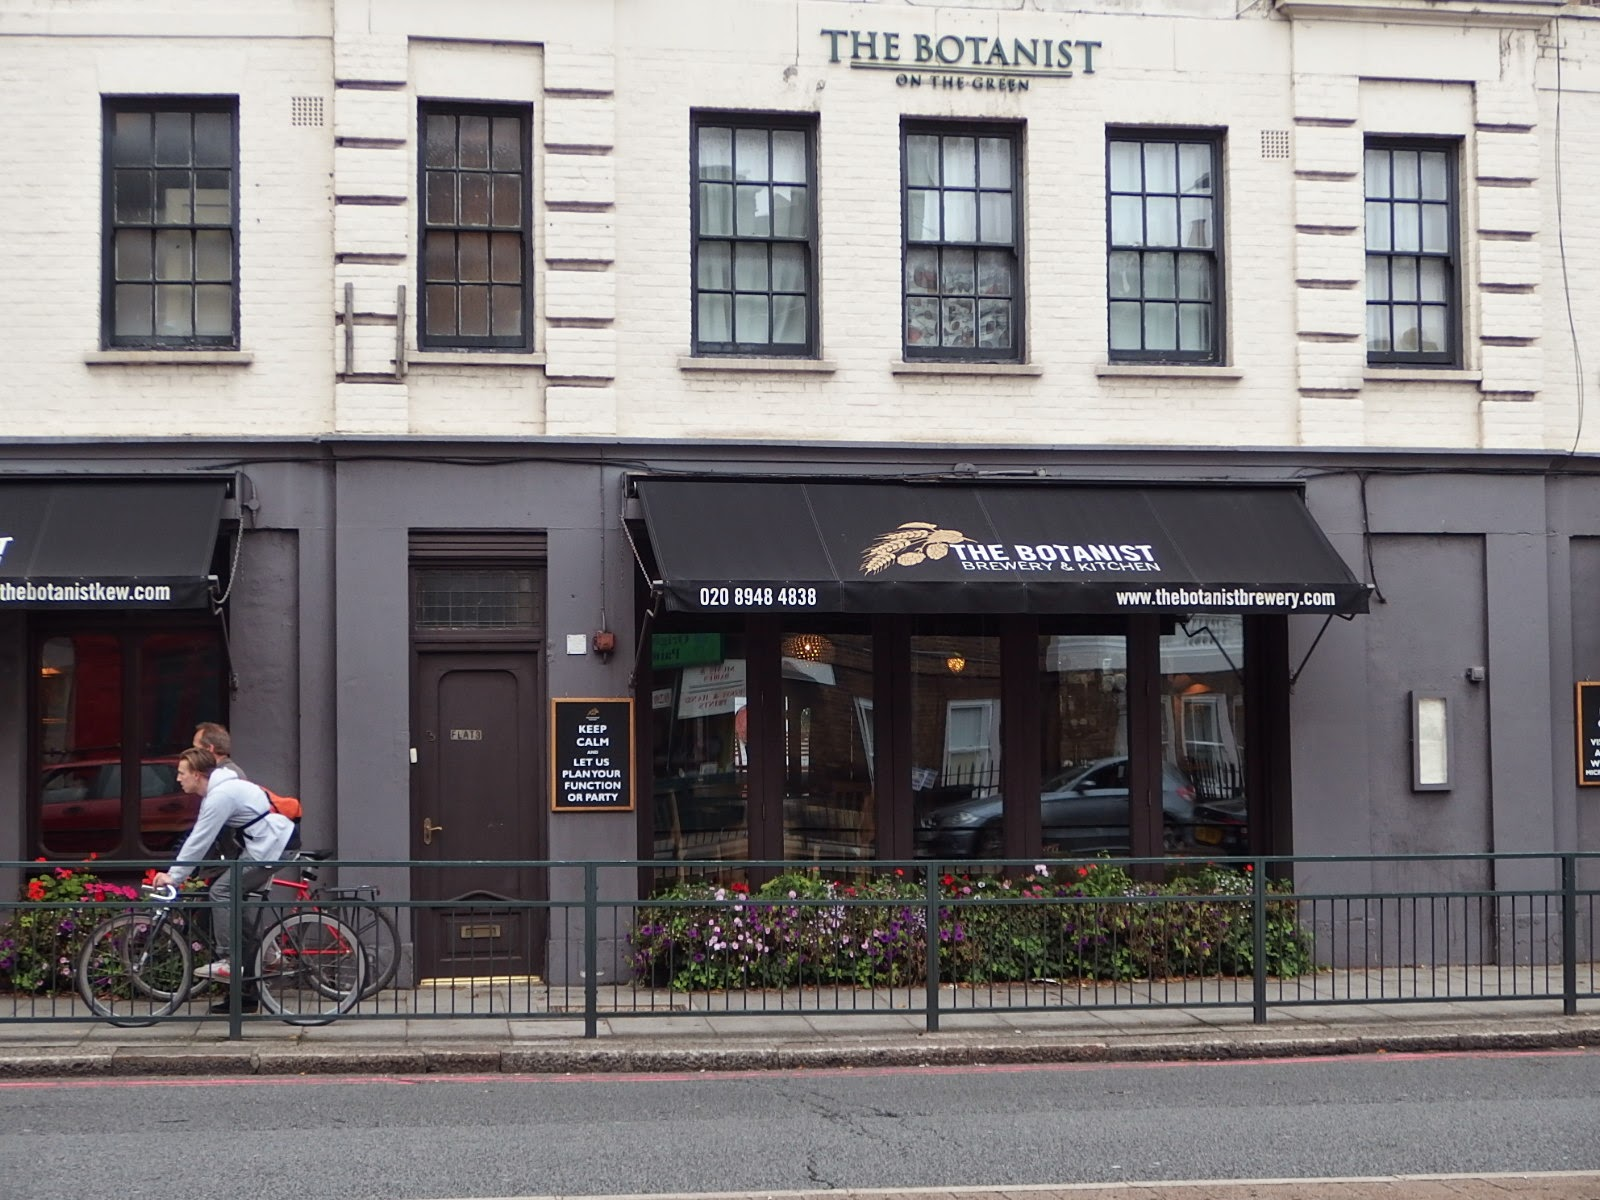 Photo of The Botanist pub on Kew Green, London